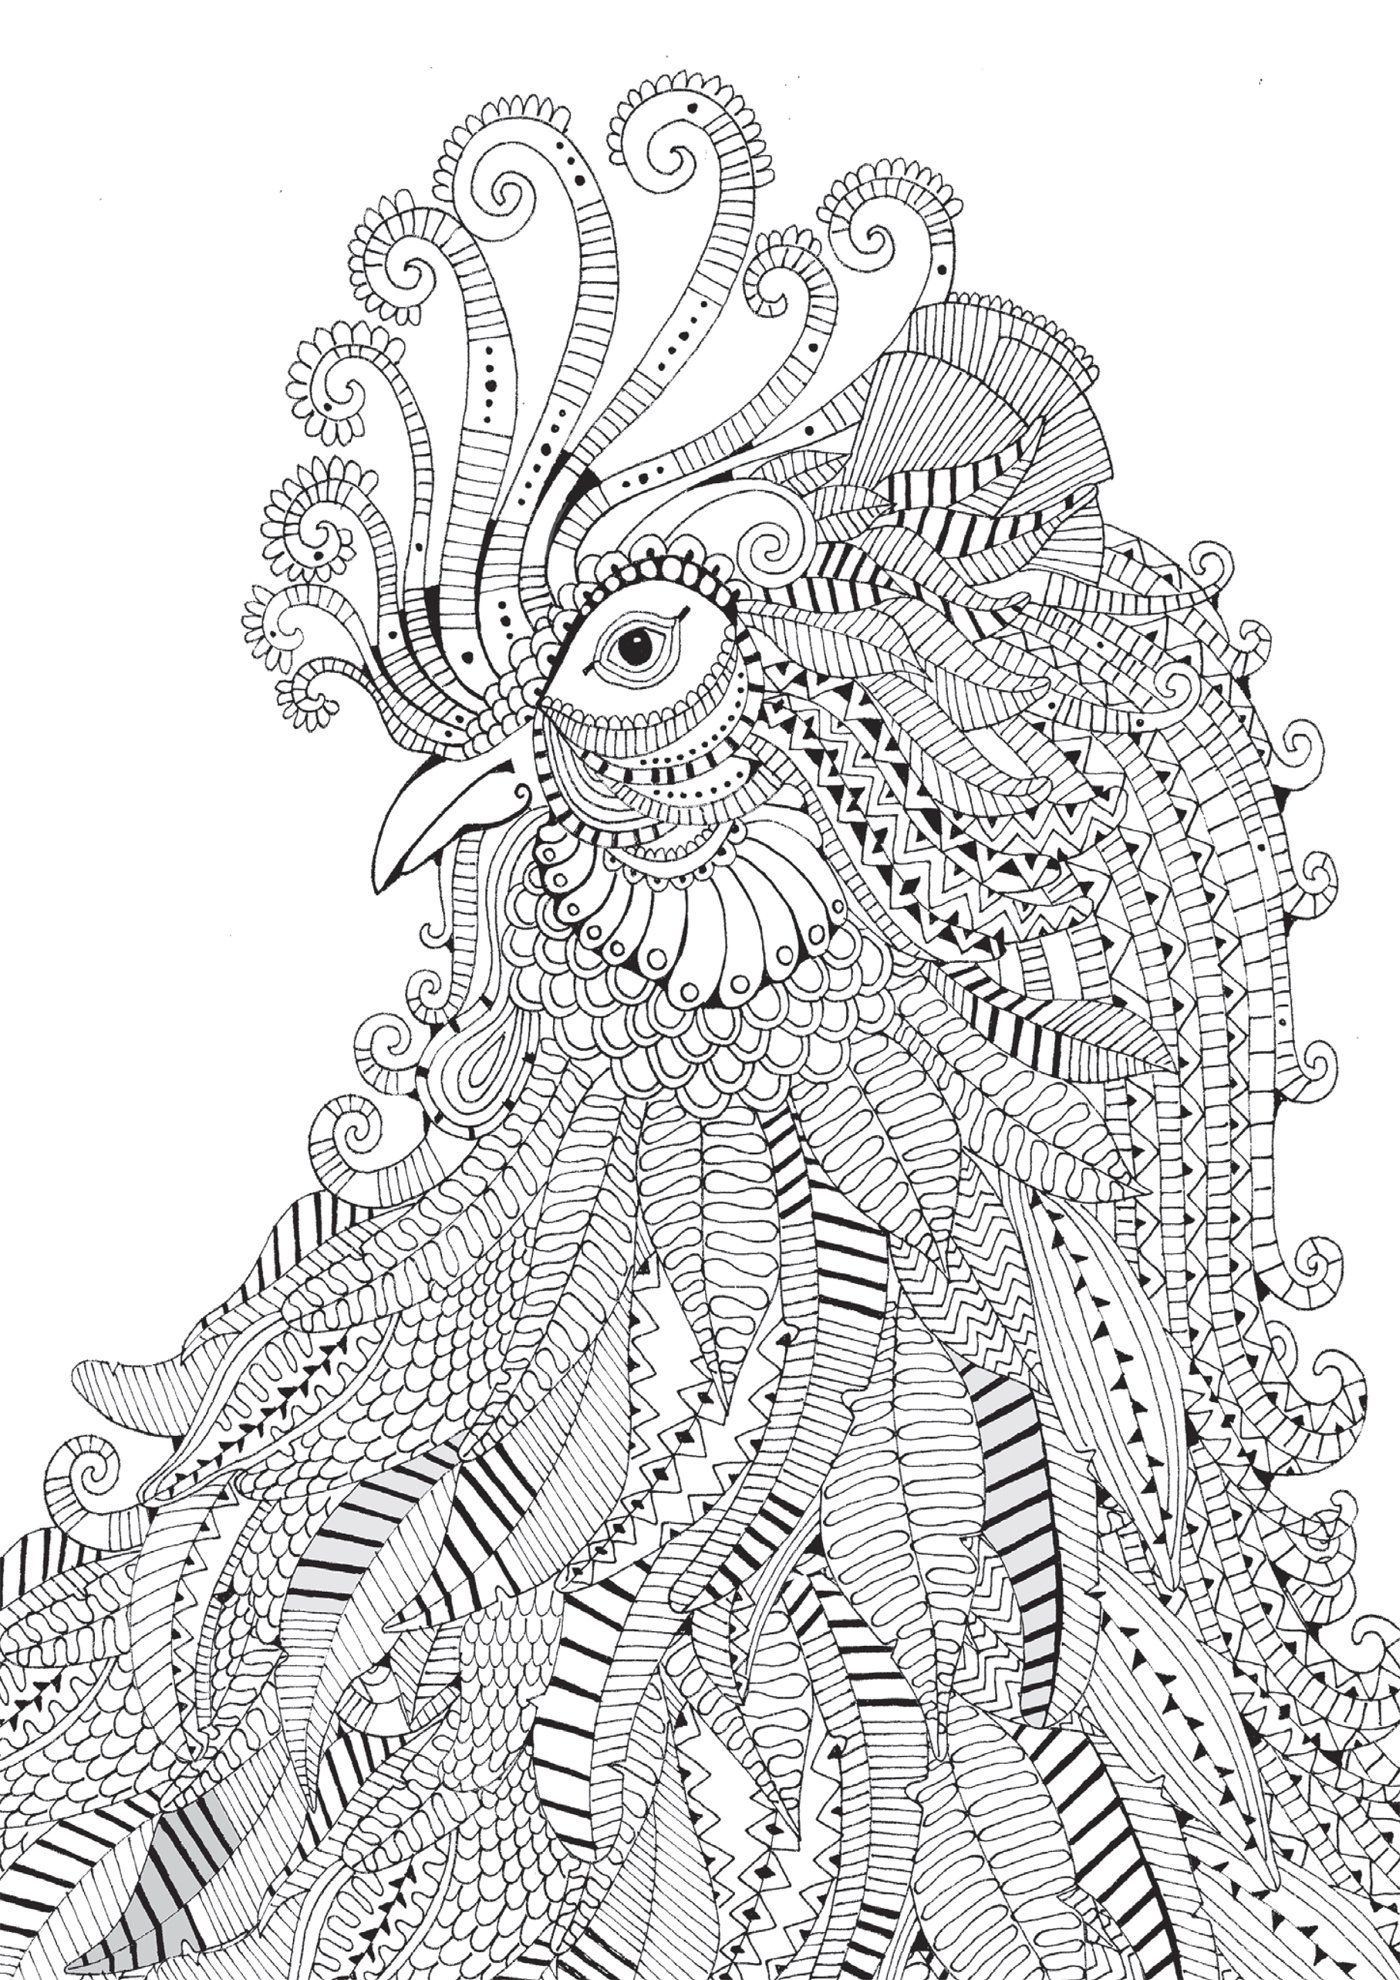 Bestiaire extraordinaire : | Coloring for adults | Pinterest ...